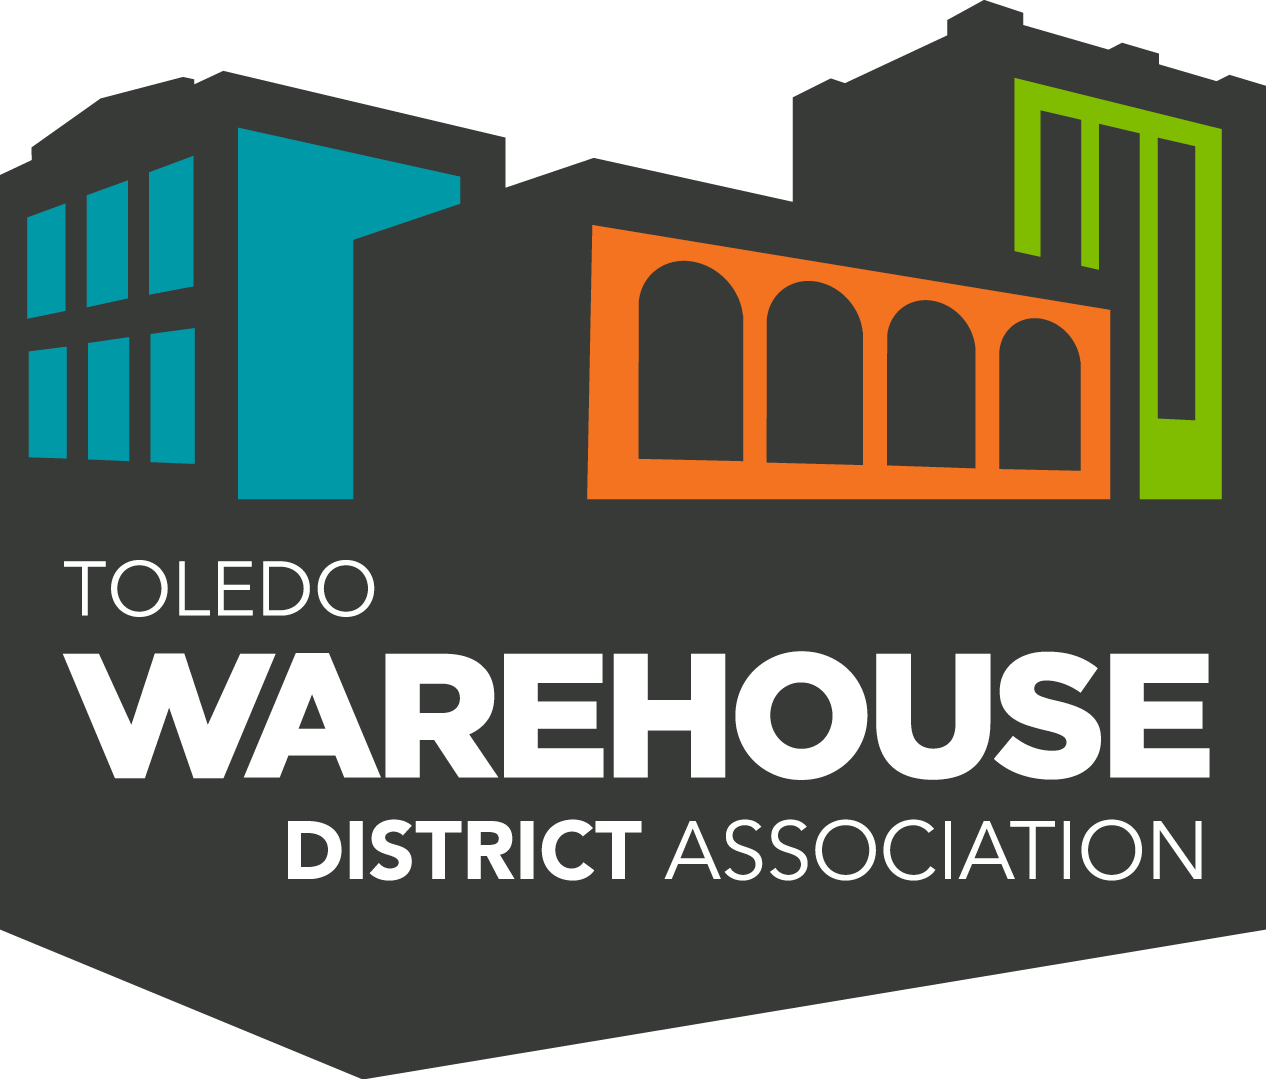 Toledo Warehouse District Association